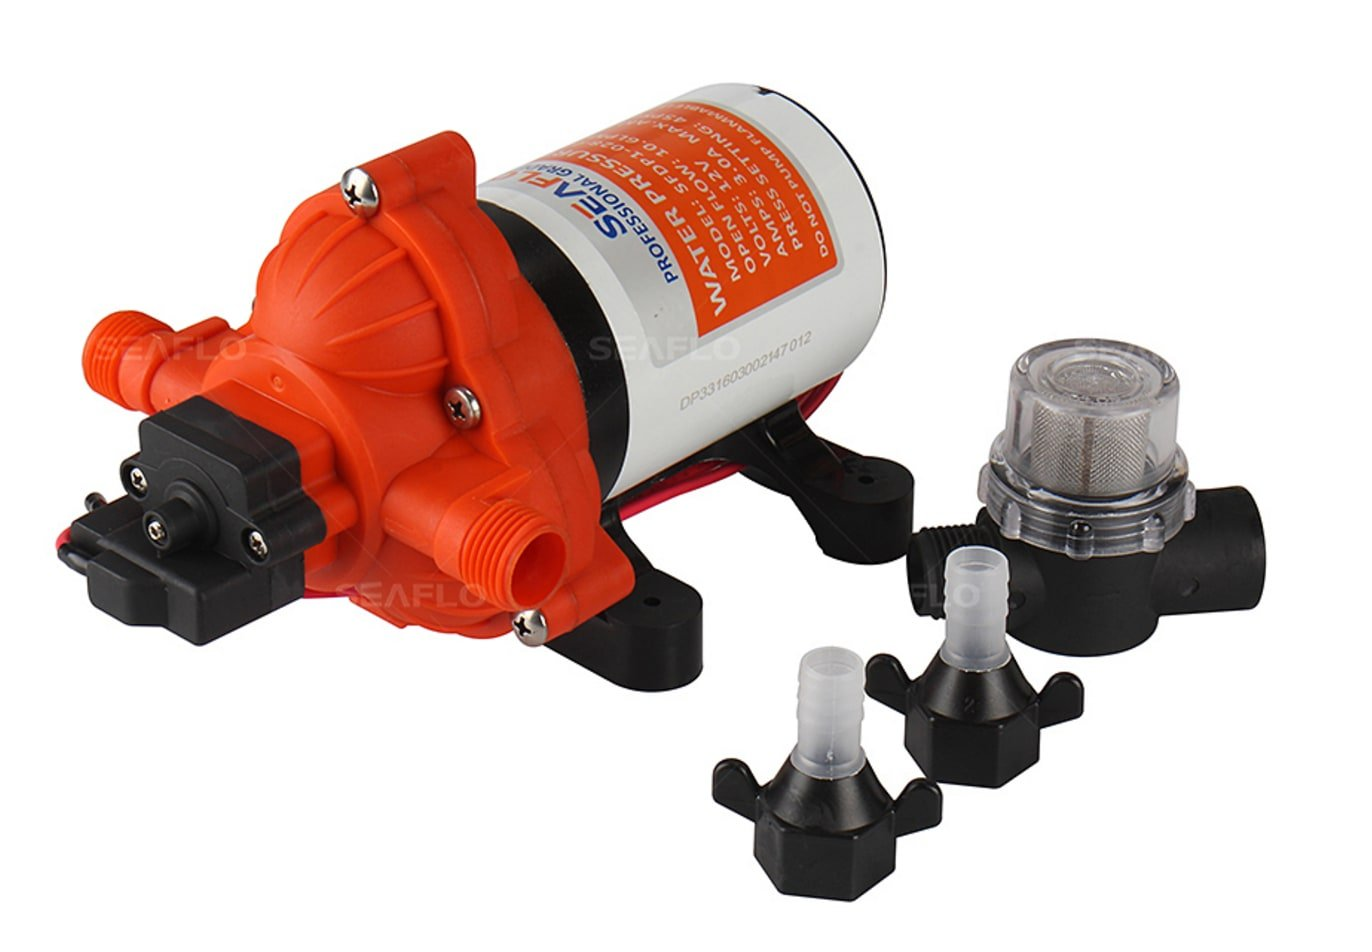 Seaflo 33 Series Industrial Water Pressure Pump W Power Plug For To Adjust Switch Cuton And Wall Outlet 115vac Gpm 45 Psi